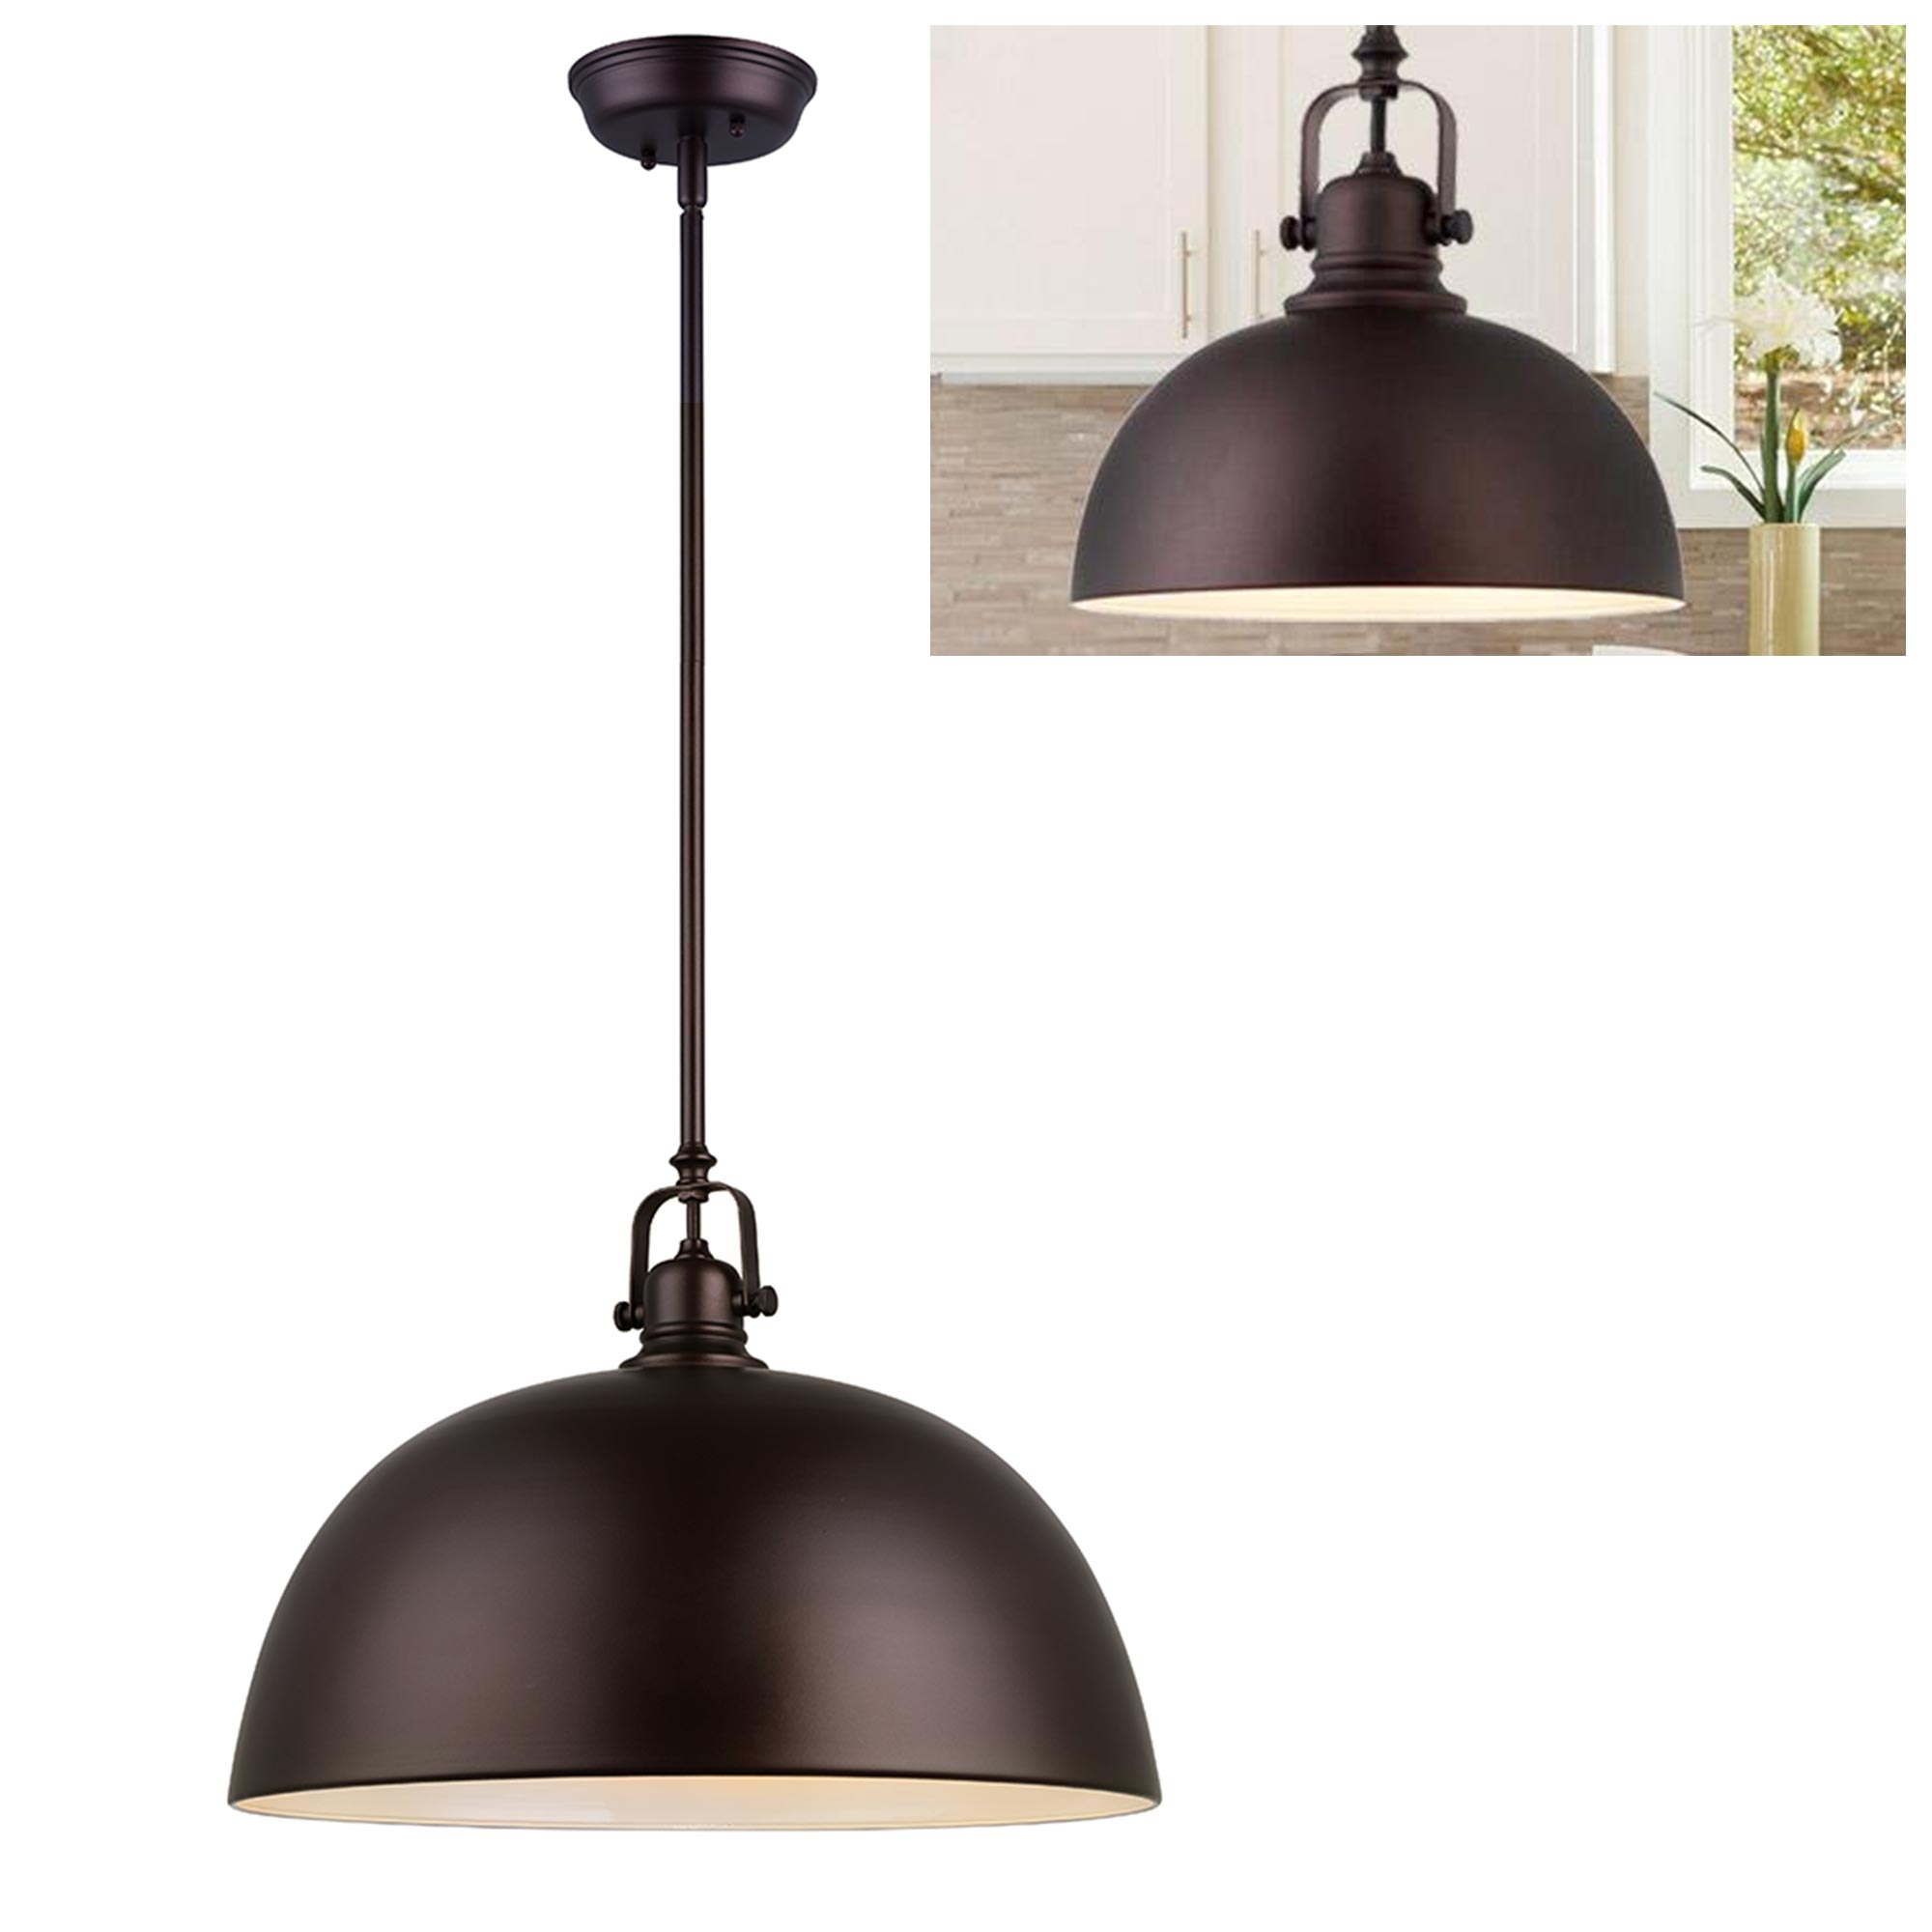 "Kitchen And Bar Large 16"" Pendant Light Fixture Adjustable"